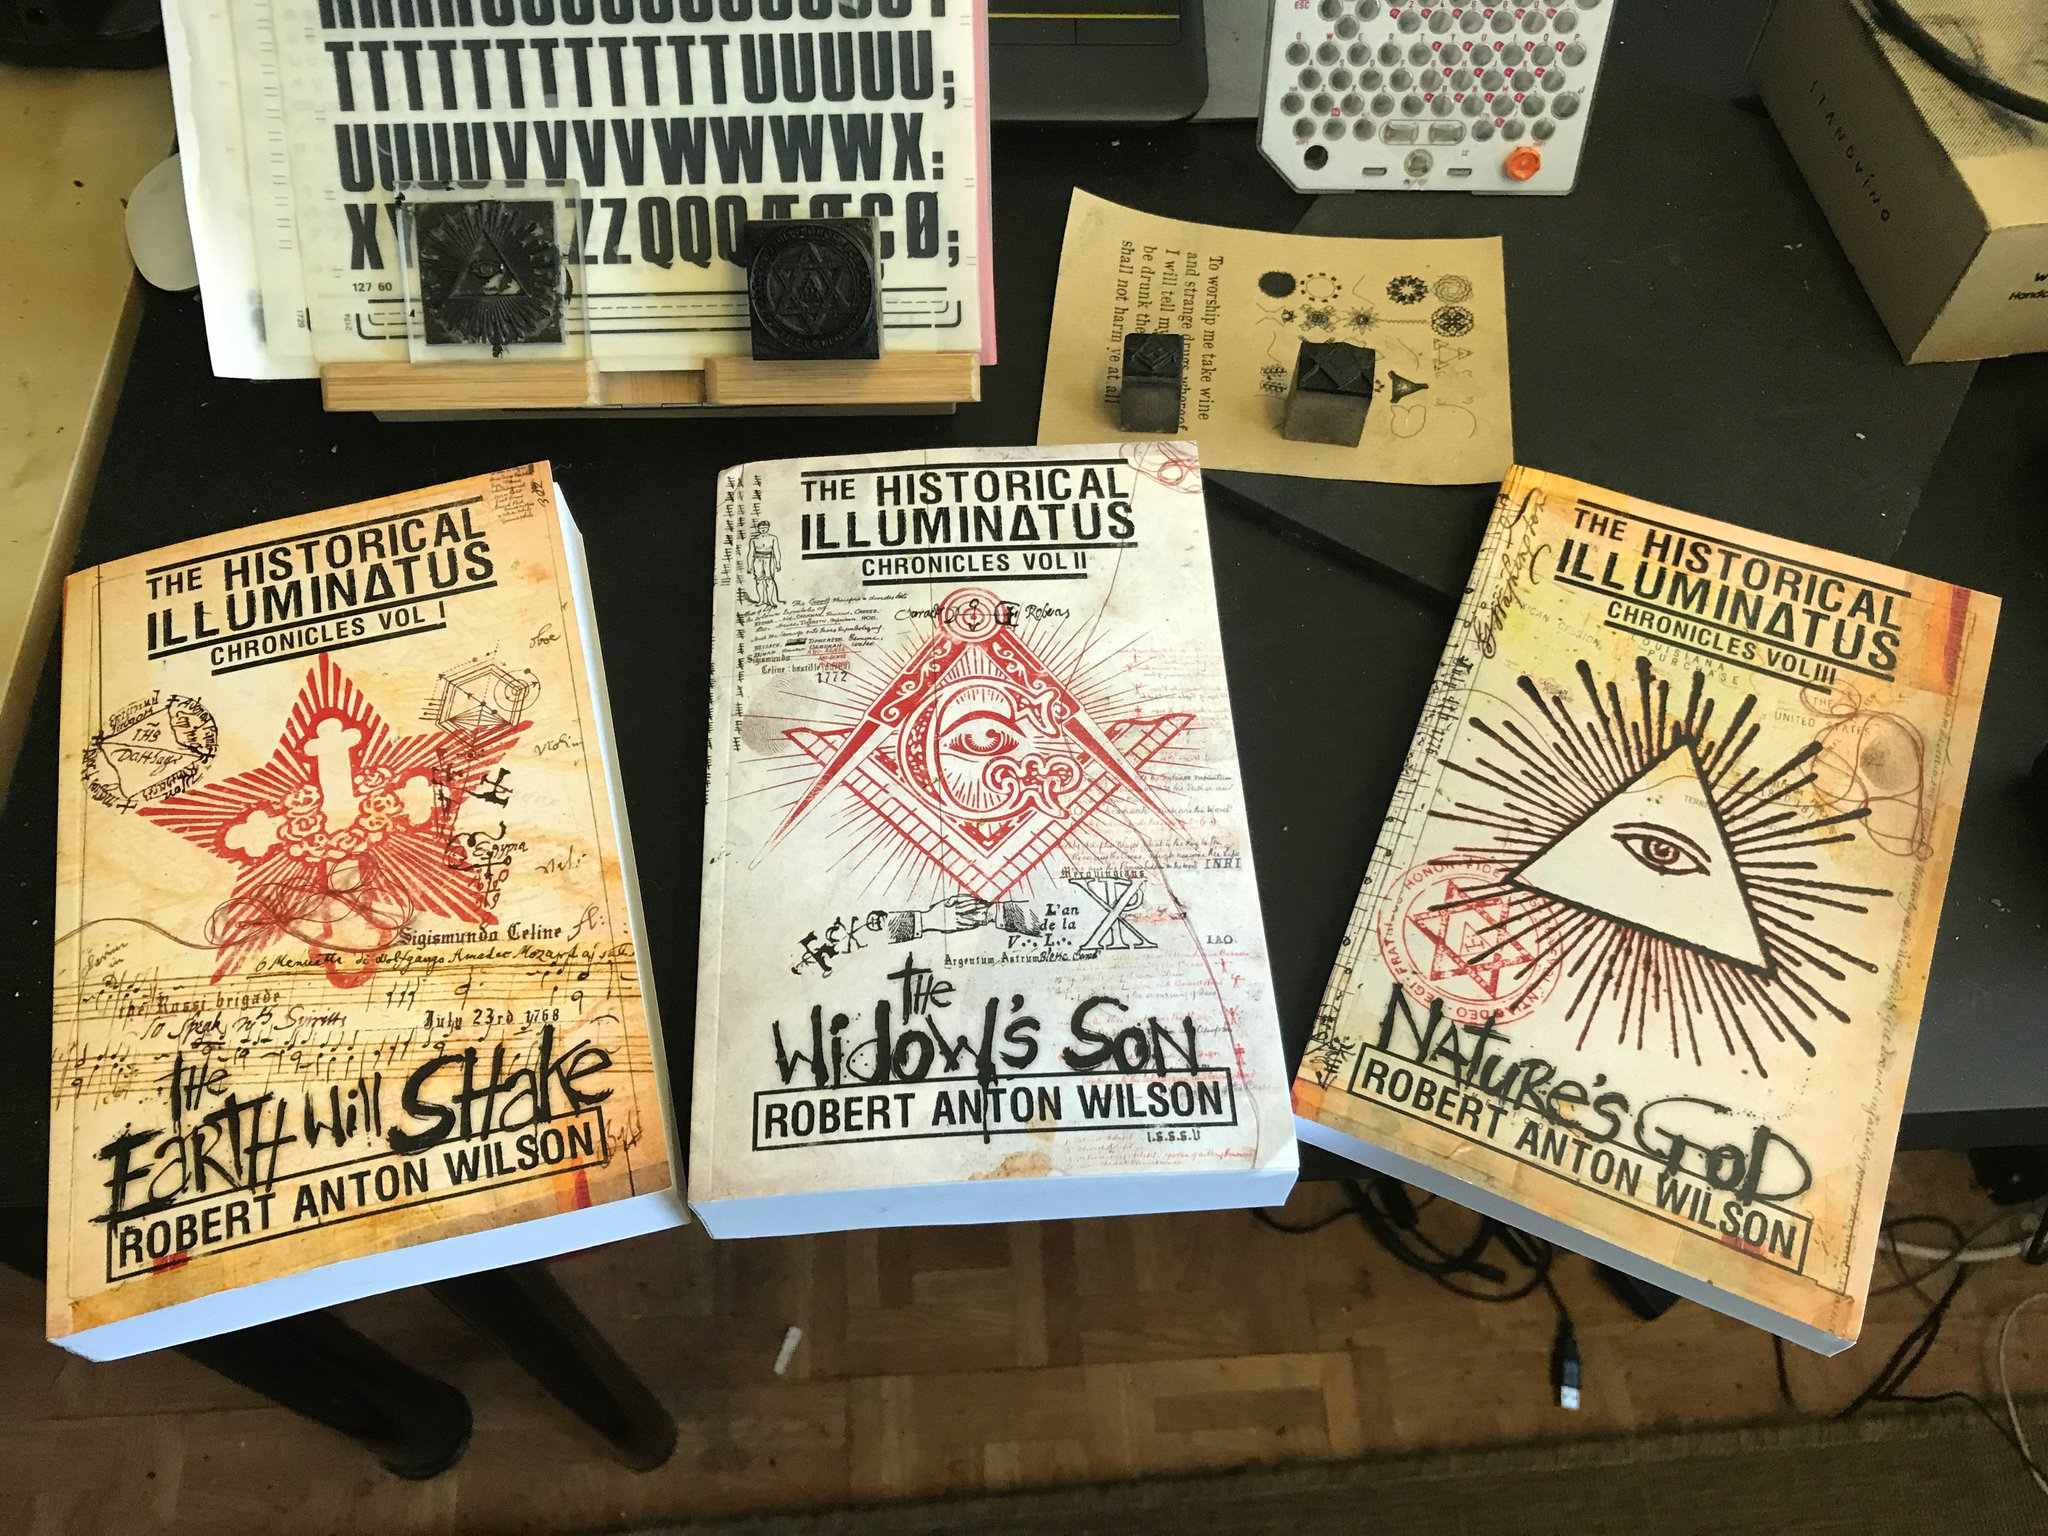 When an idea manifests itself into your reality, The Historical Chronicles of the Illuminatus Books V1-3, arrive home in the studio, sitting beside some of the rubber-stamps that i used for the covers. https://t.co/w0iomXXaIu